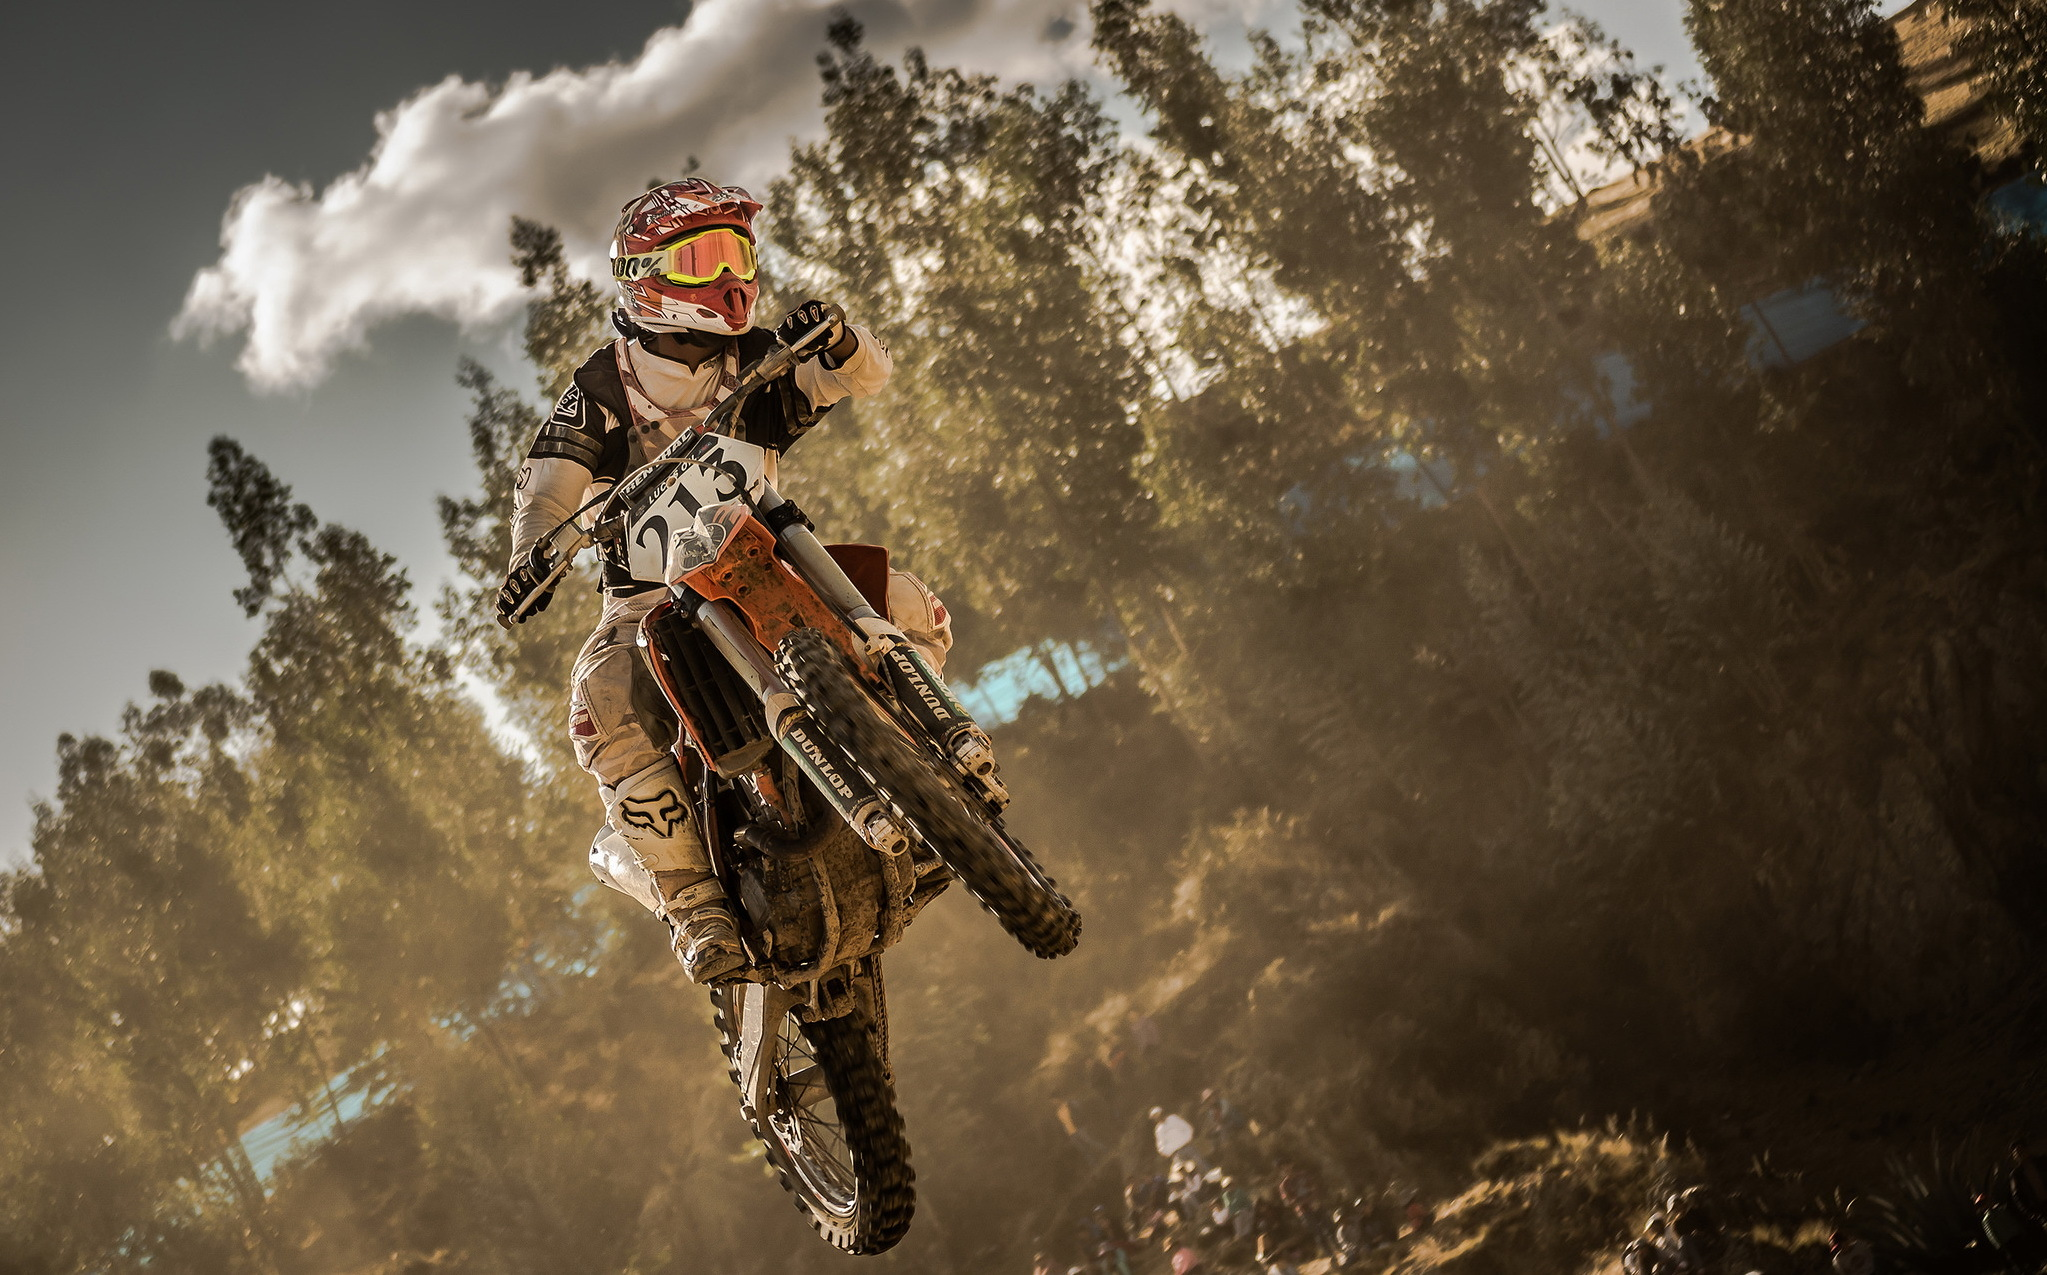 10 New Ktm Dirt Bike Wallpapers Full Hd 1080p For Pc: Motocross HD Wallpaper